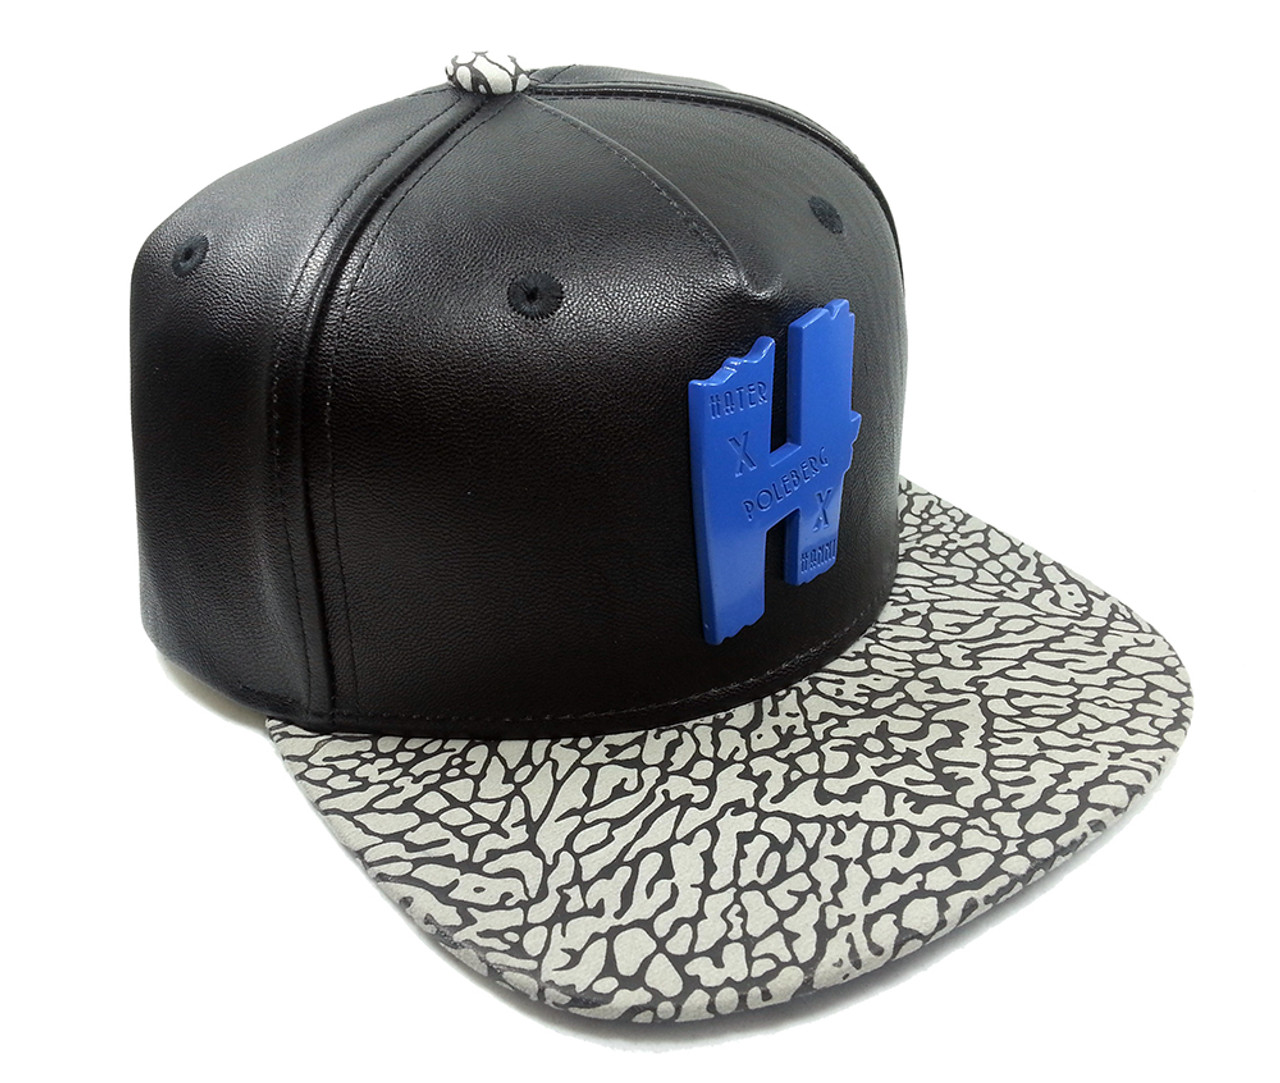 ed2bae32226 HATer Snapback X Poleberg x Hanni Collab Hat Cap - HAS Style